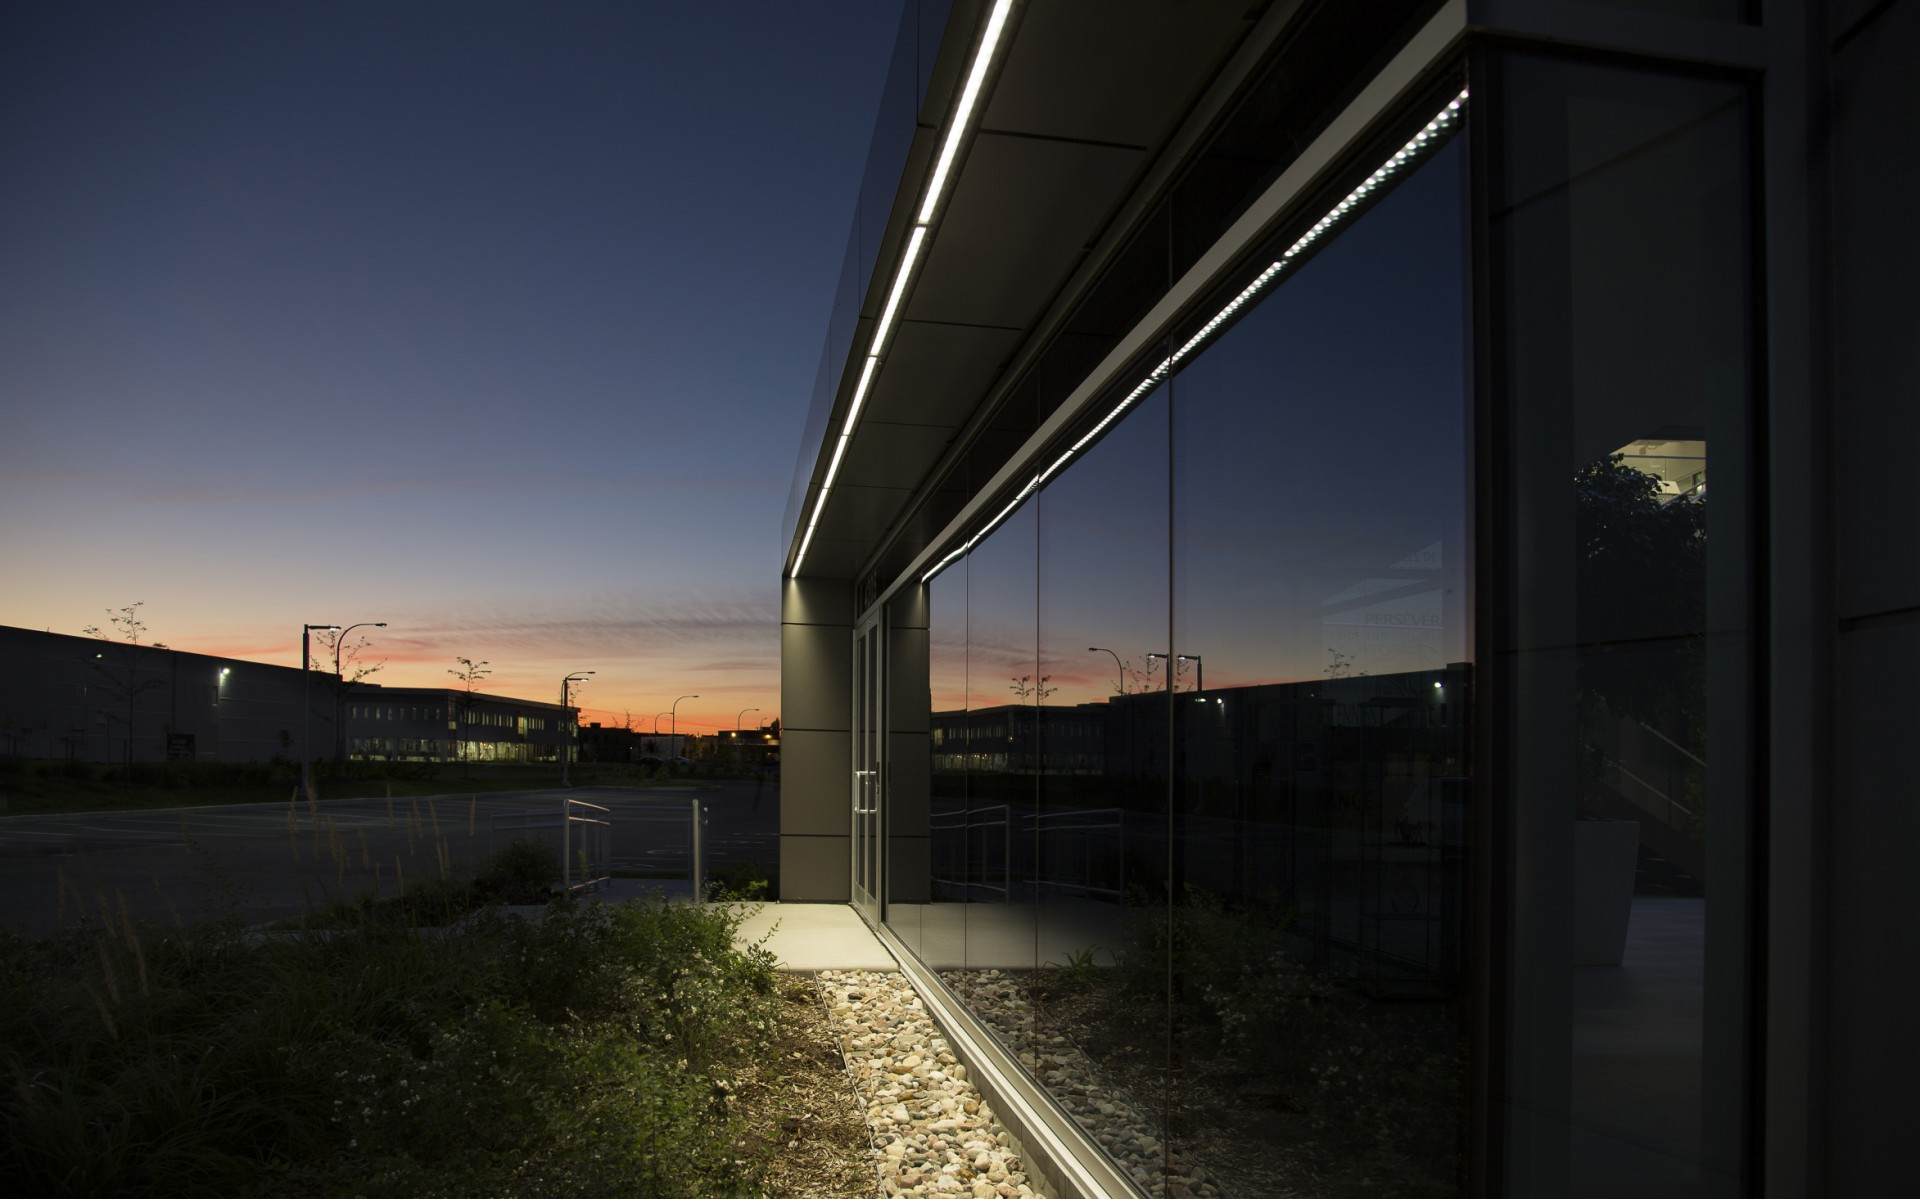 Exterior lighting was provided by energy efficient ASHRAE versions of Lumenfacade fixtures.